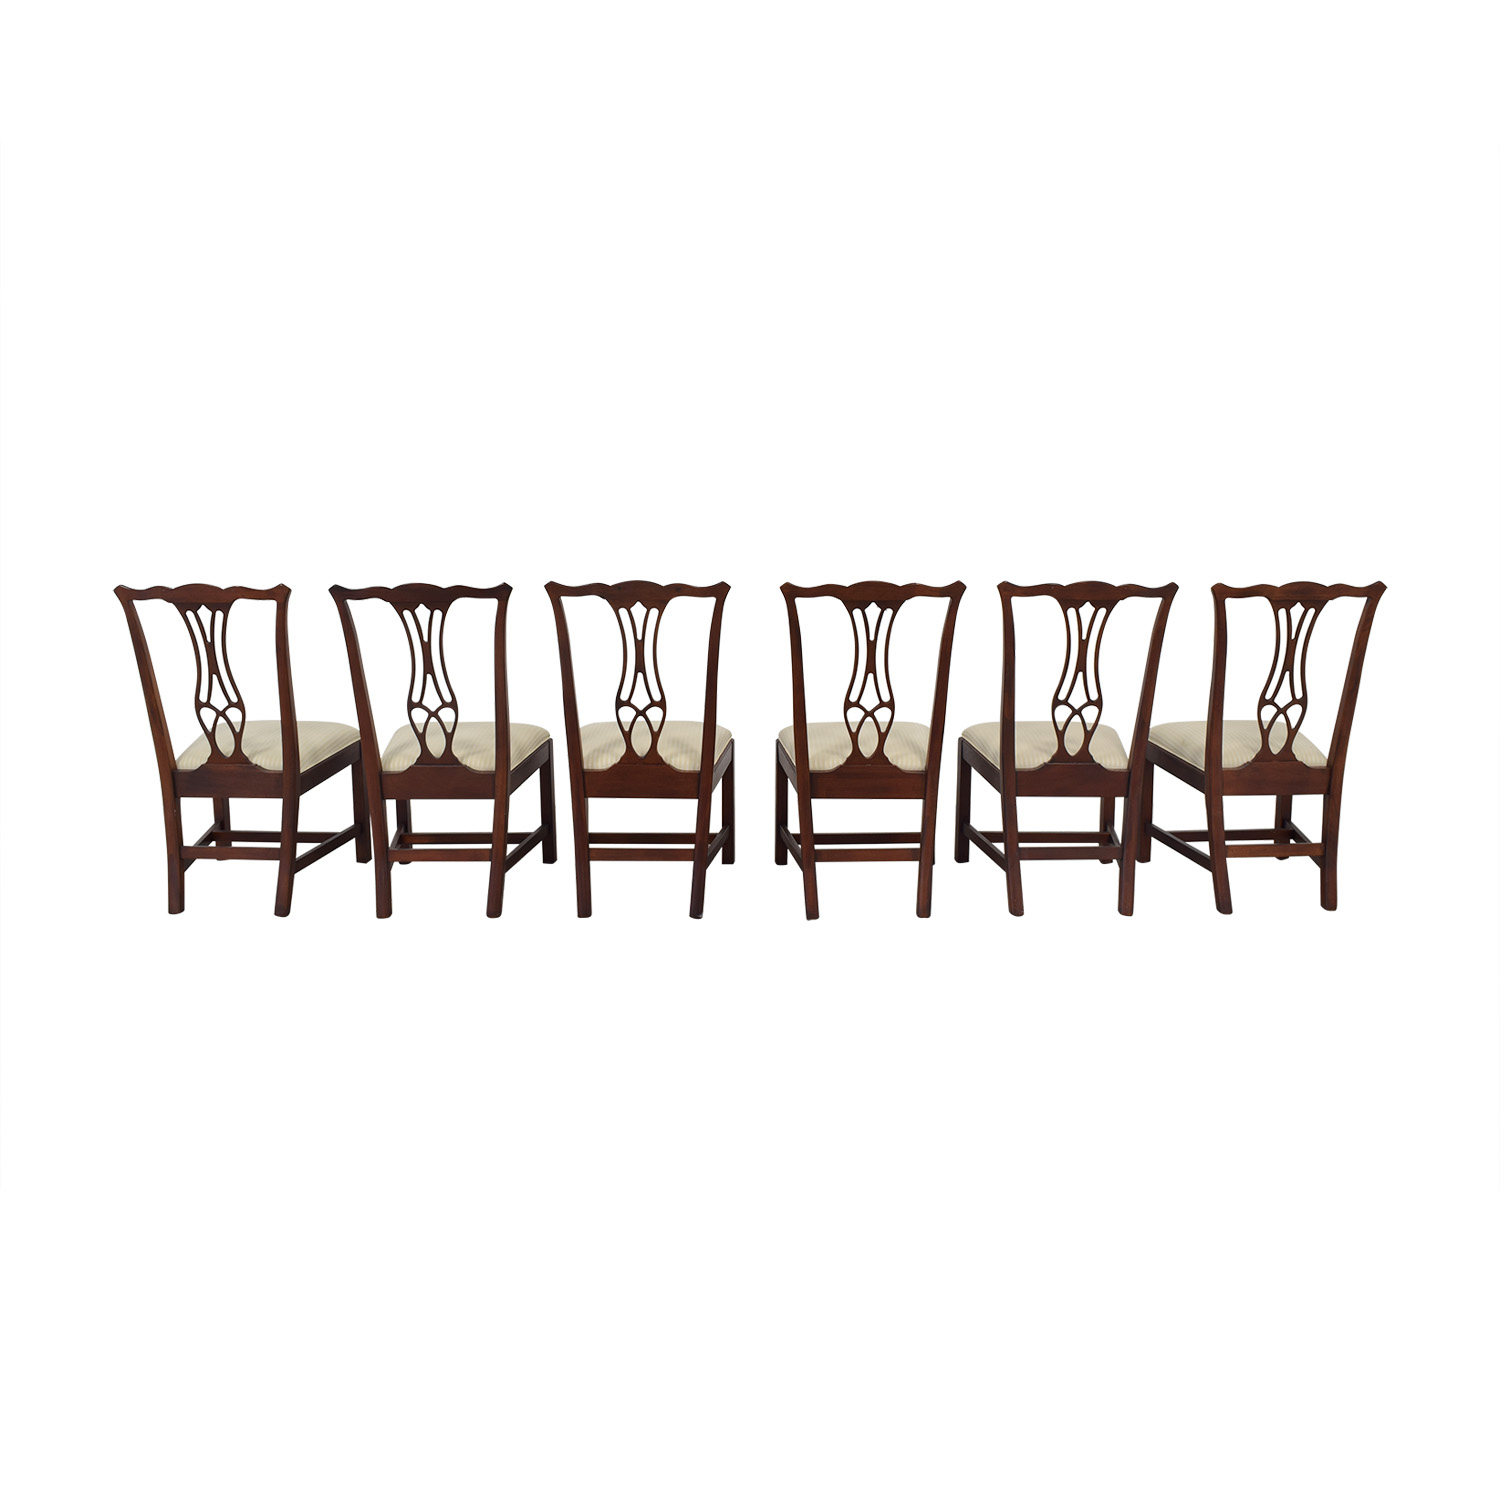 Drexel Heritage Upholstered Dining Chairs sale